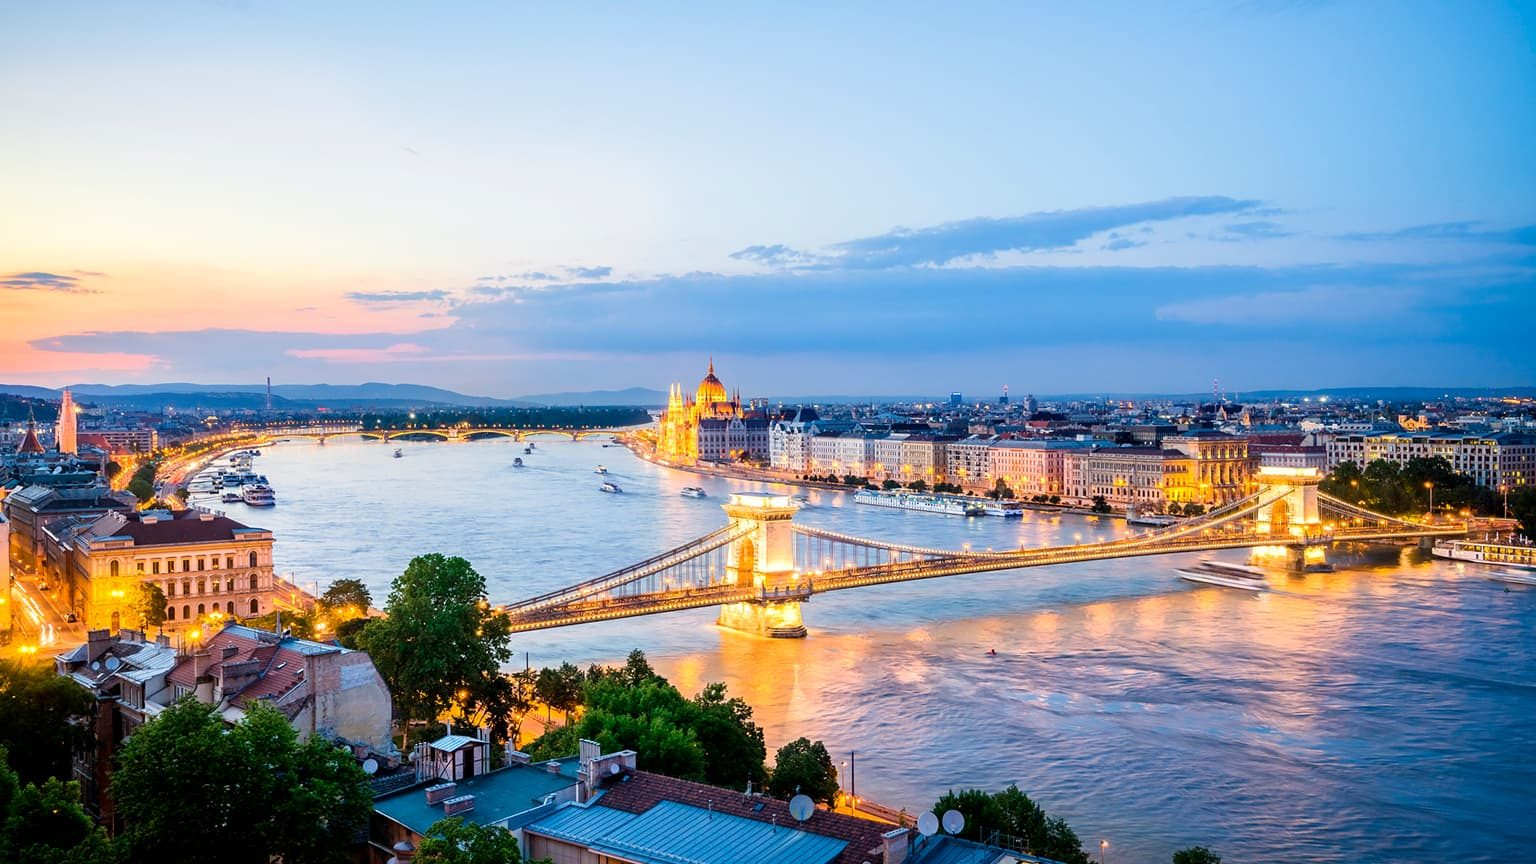 Budapest, Chain Bridge over Danube River and Hungarian Parliament Building.